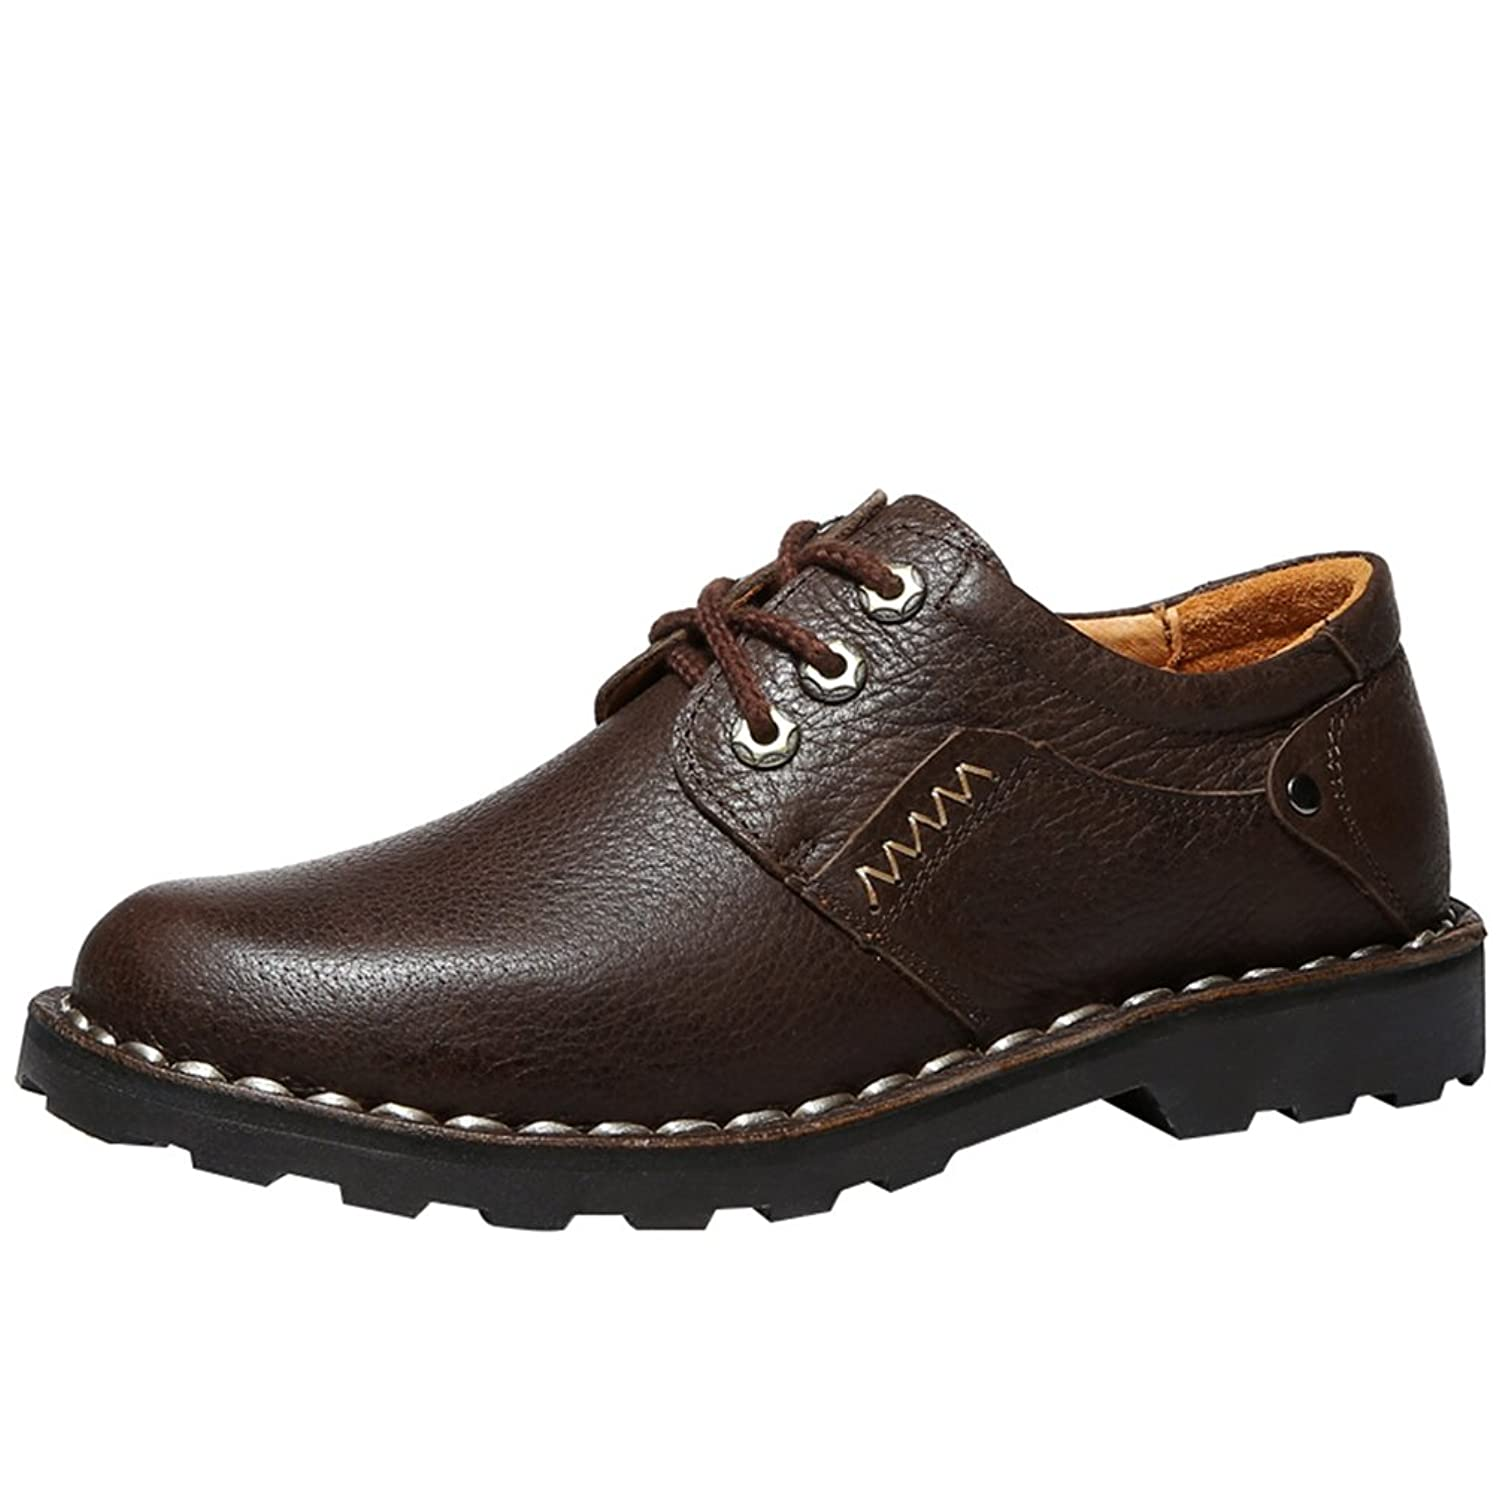 Passionow Men's Casual Business Work Lace-up Leather Oxfords